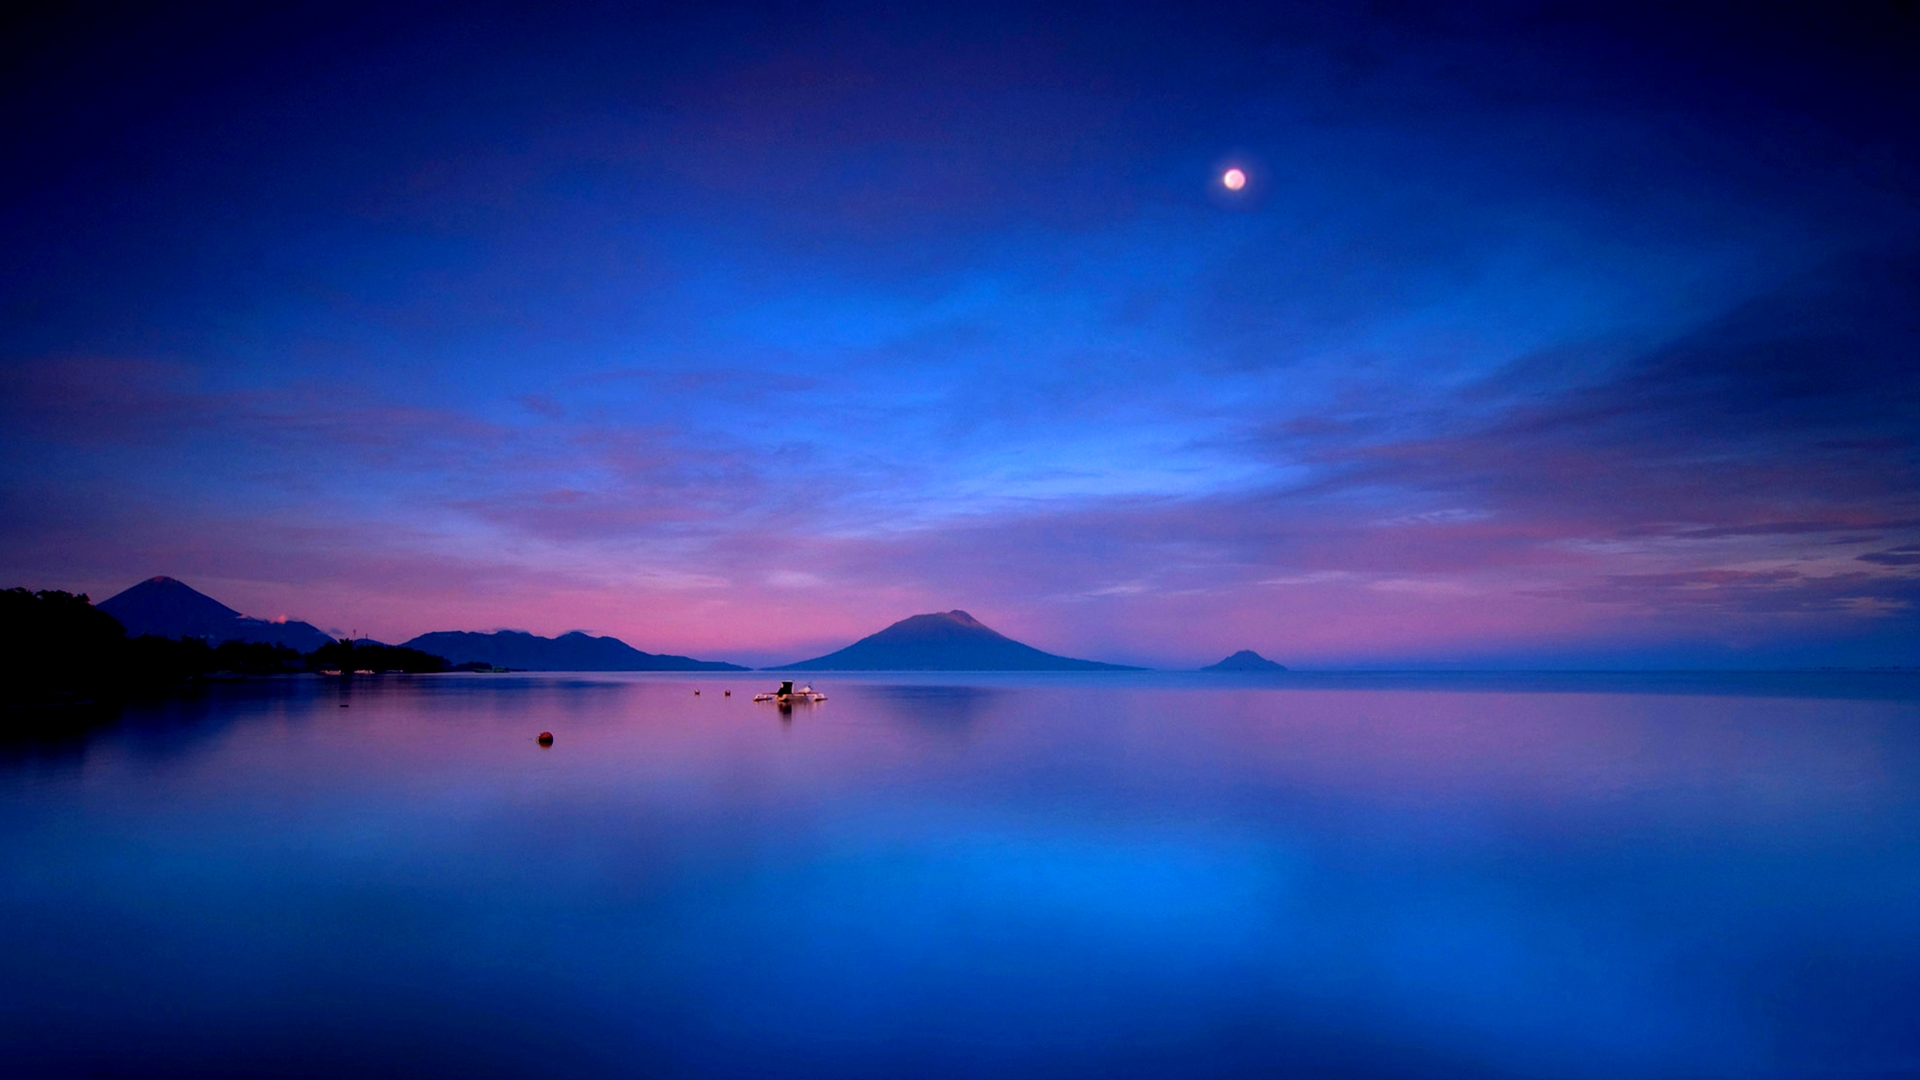 Peaceful wallpaper 1600x1200 68786 - Peaceful background images ...